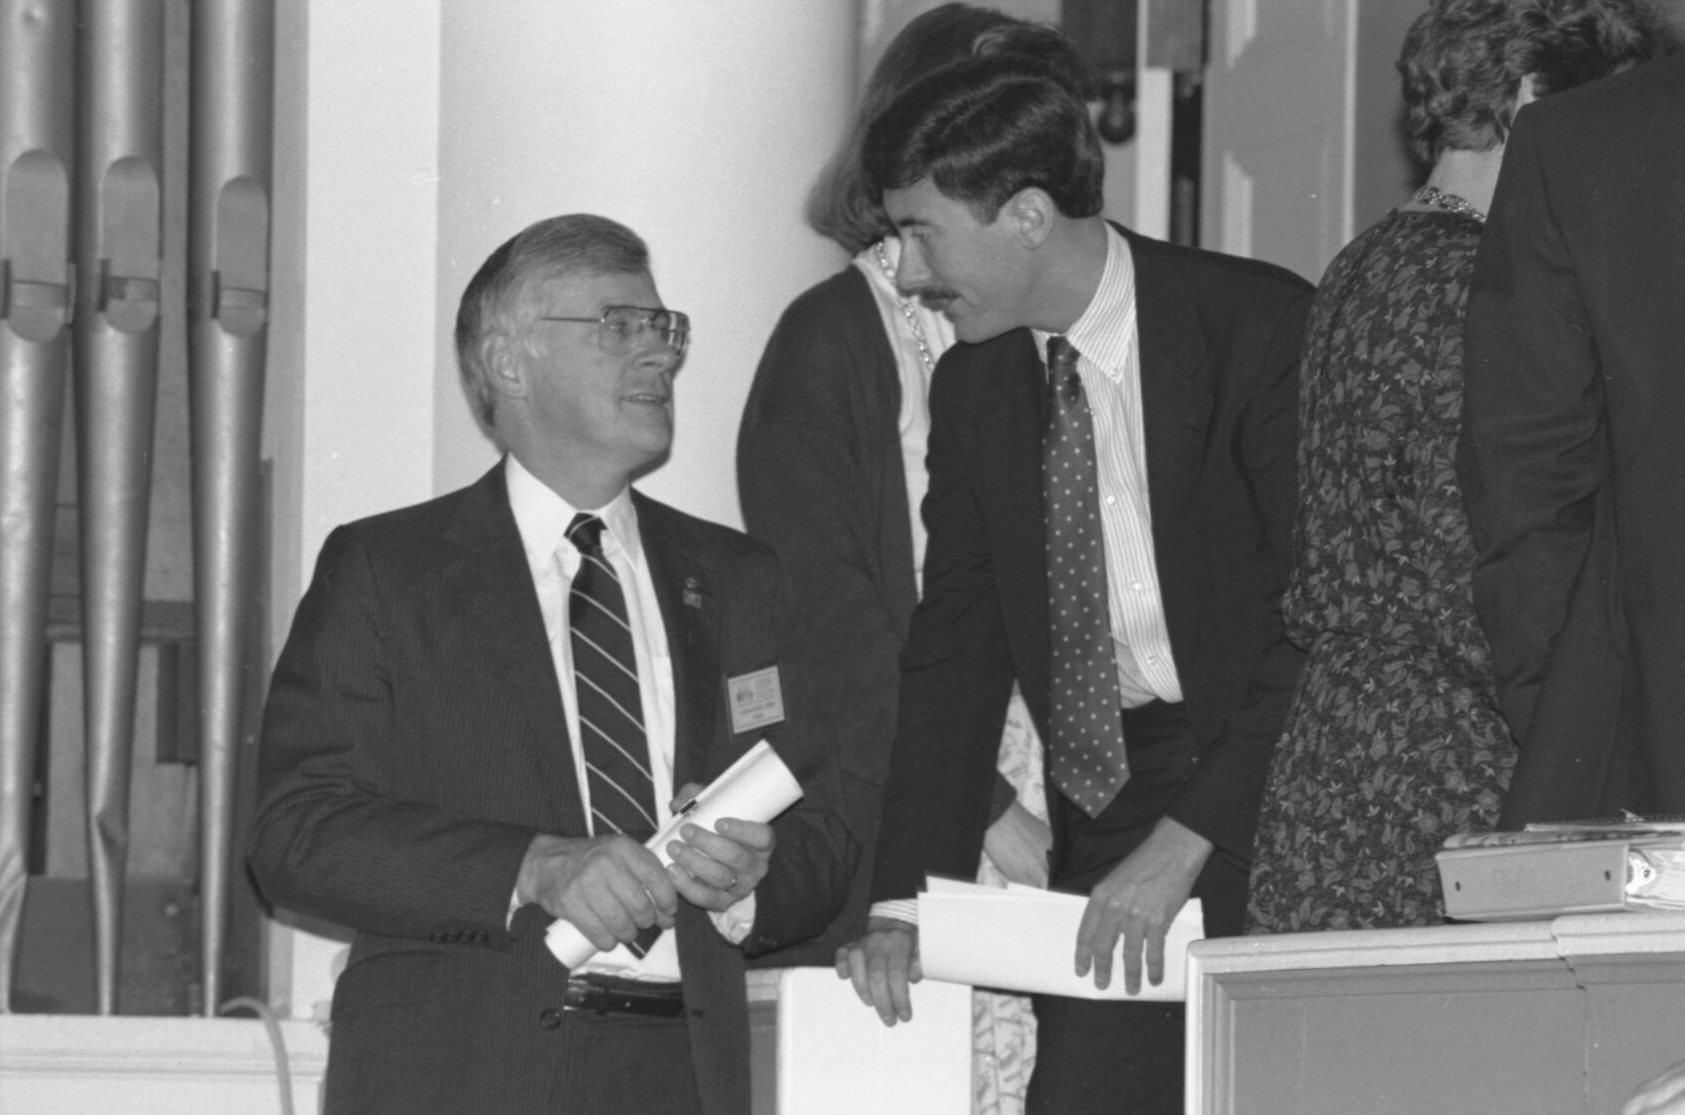 Professor Larry Sabato, right, at the education summit in 1989 with then-Gov. Gerald Baliles, who would go on to lead UVA's Miller Center of Public Affairs. (Photo courtesy Albert and Shirley Small Special Collections Library)